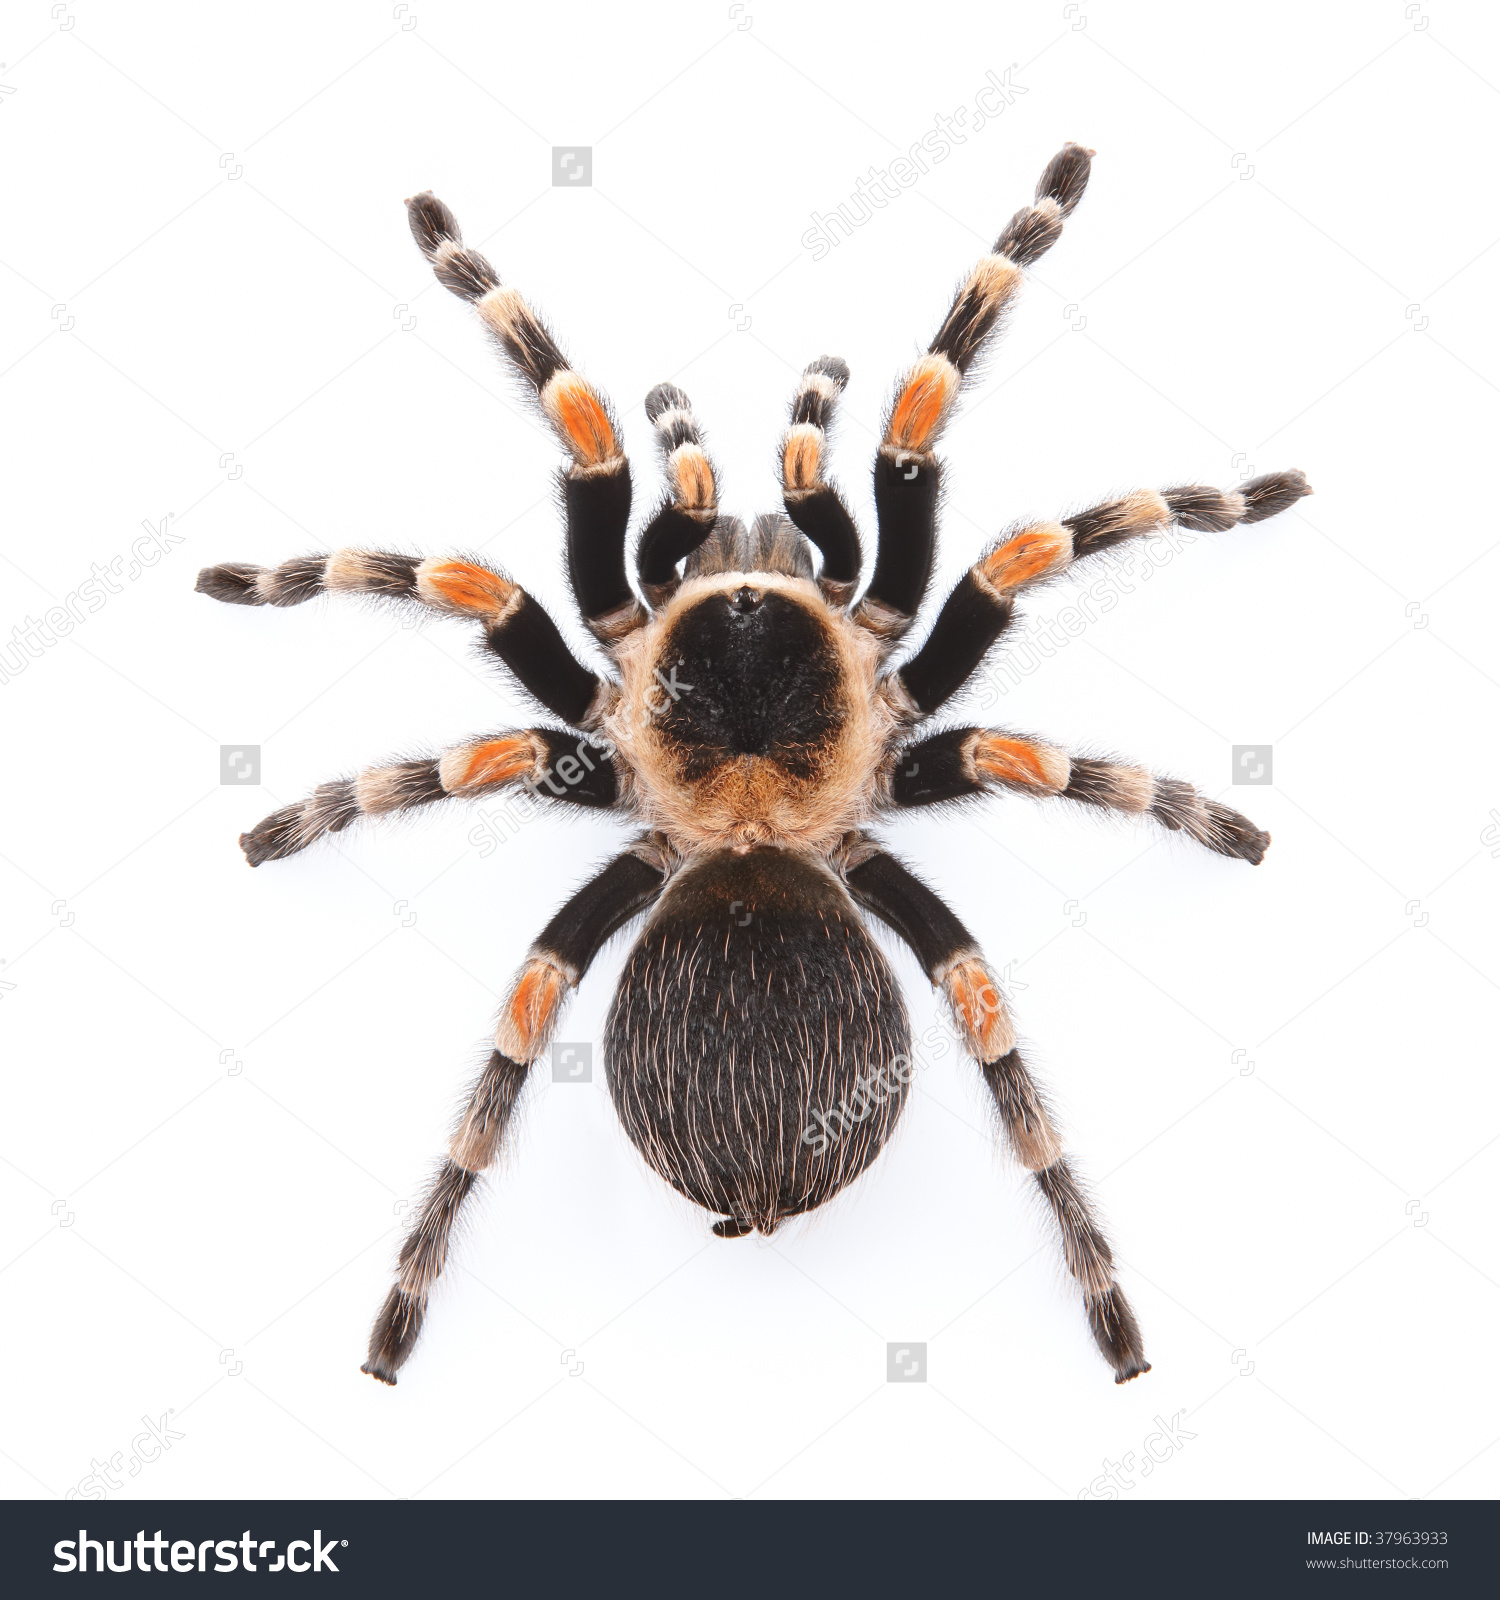 Mexican Red Knee Tarantula Top View Stock Photo 37963933.